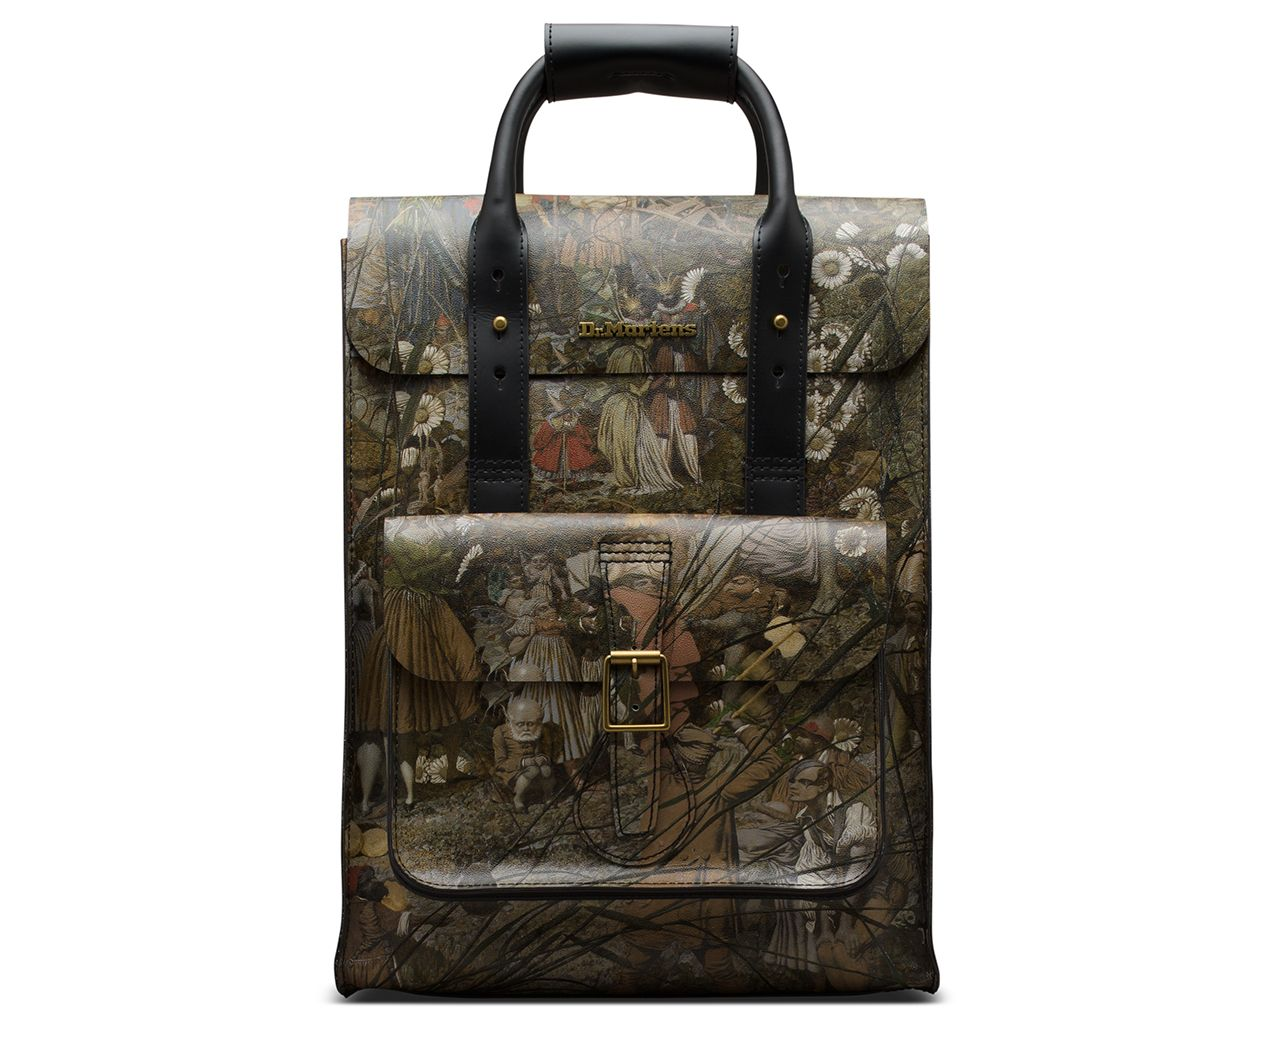 pas mal 8cb3c 1c250 Dr martens sac à dos tate dadd in 2019 | Bags | Dr martens ...